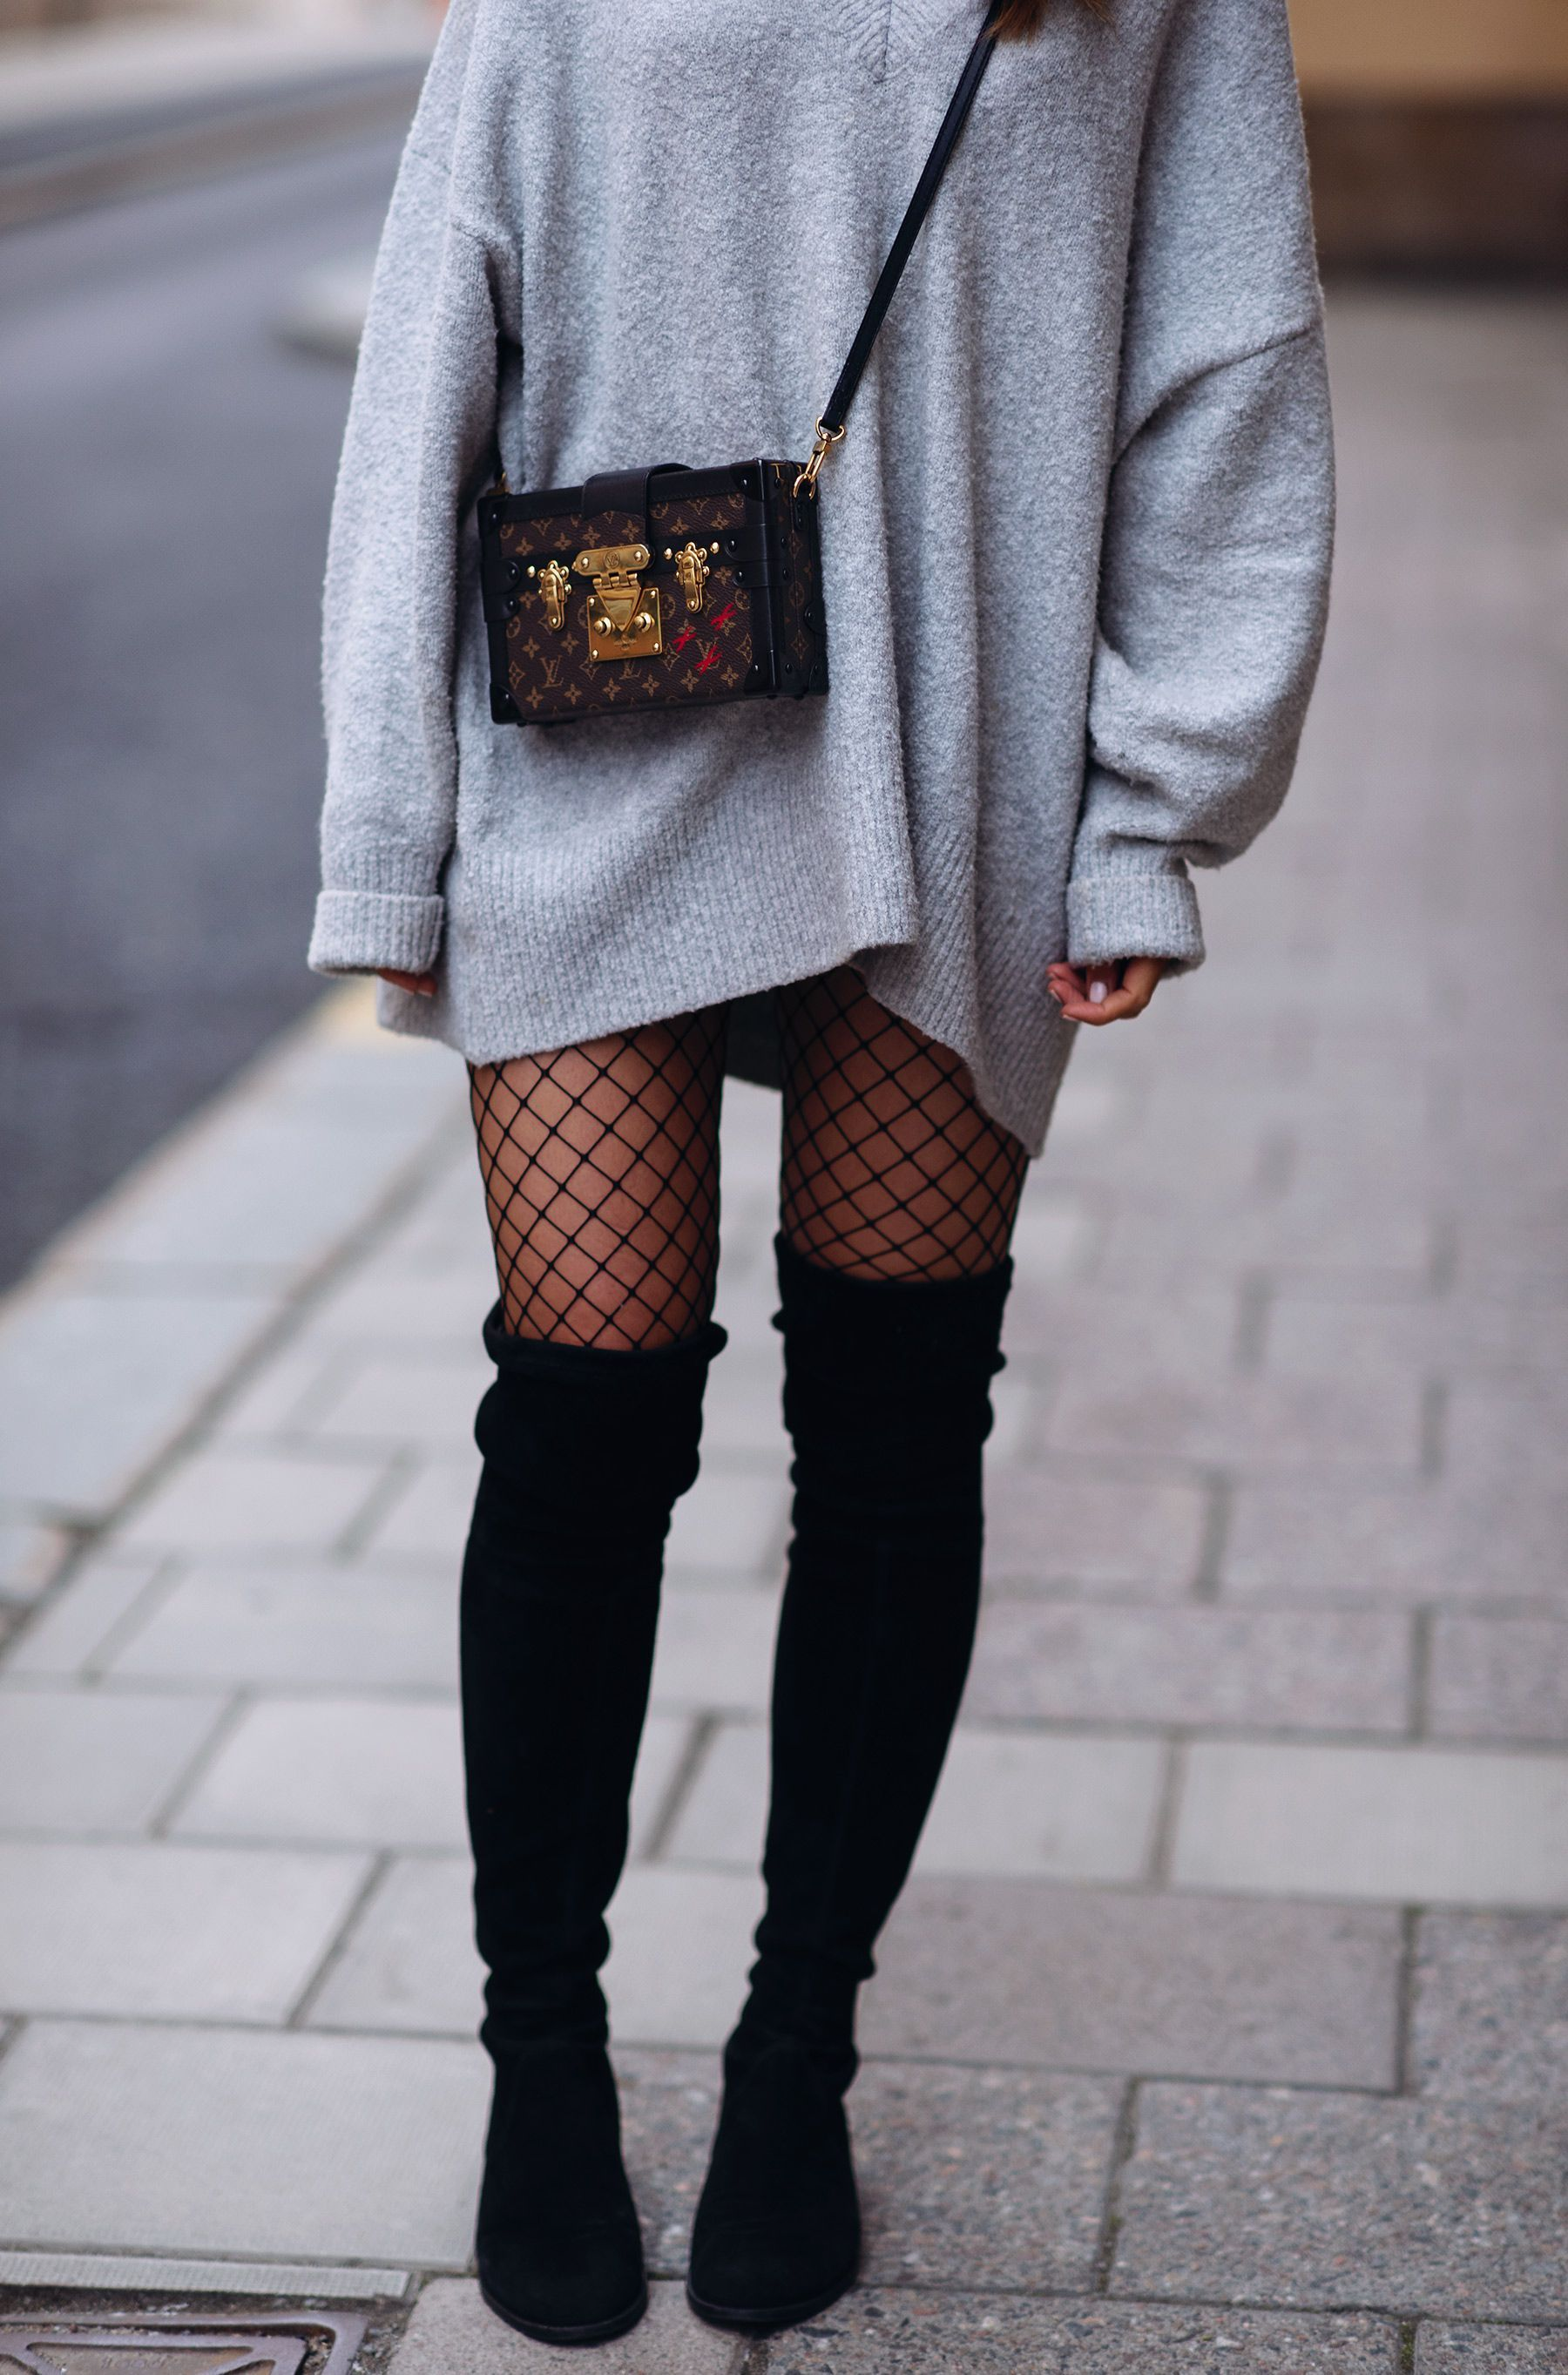 8c63462654cb Big sweater   fishnets - Mariannan Concert Outfit Winter